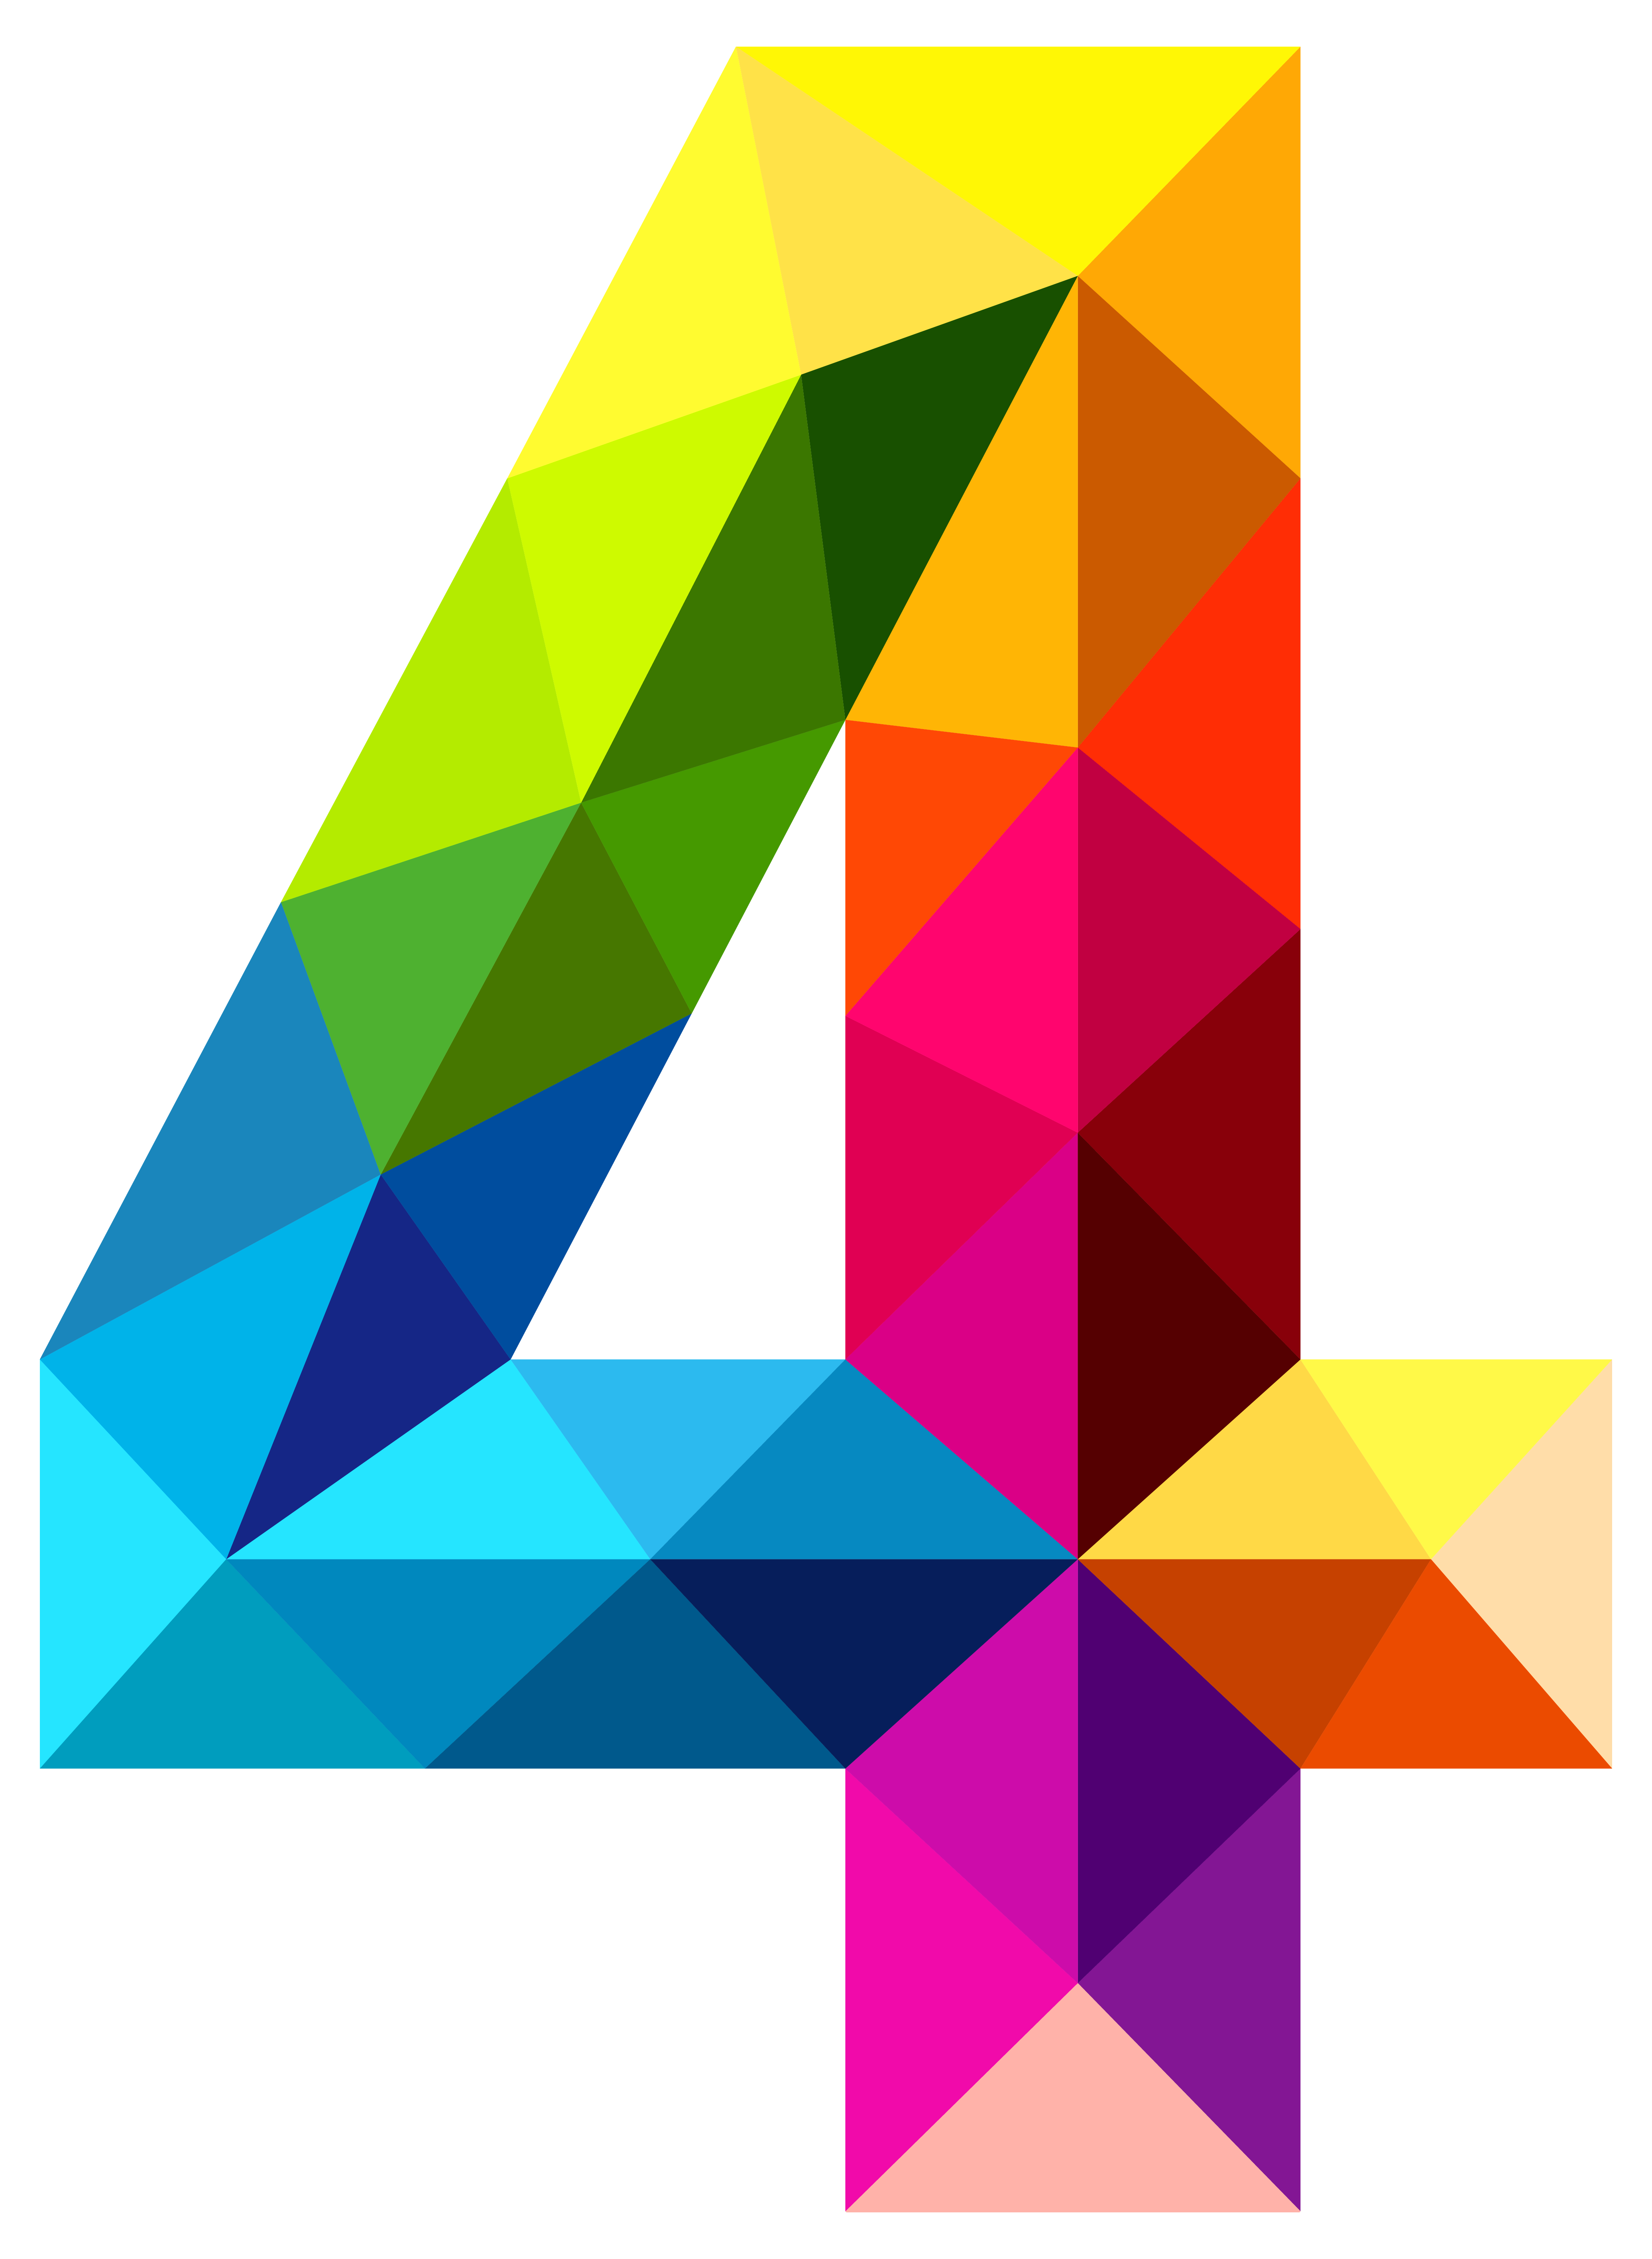 Number 4 clipart png. Colourful triangles four image